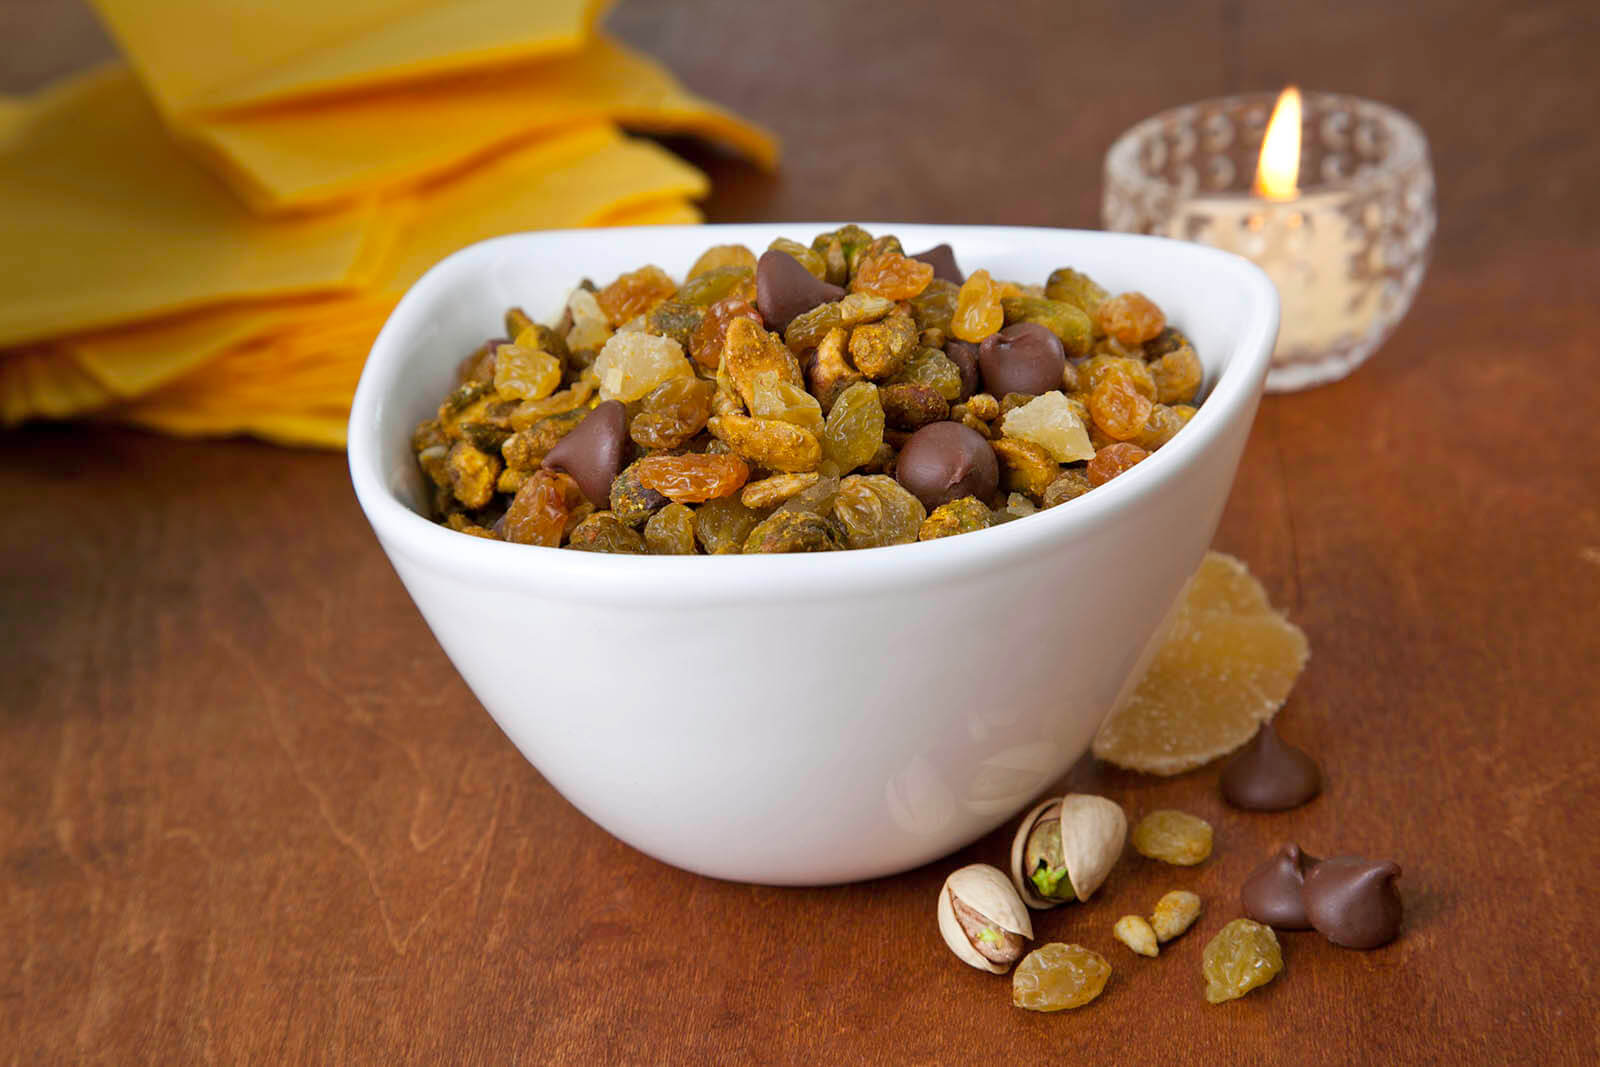 Curry-Spiced Chocolate Nut Mix